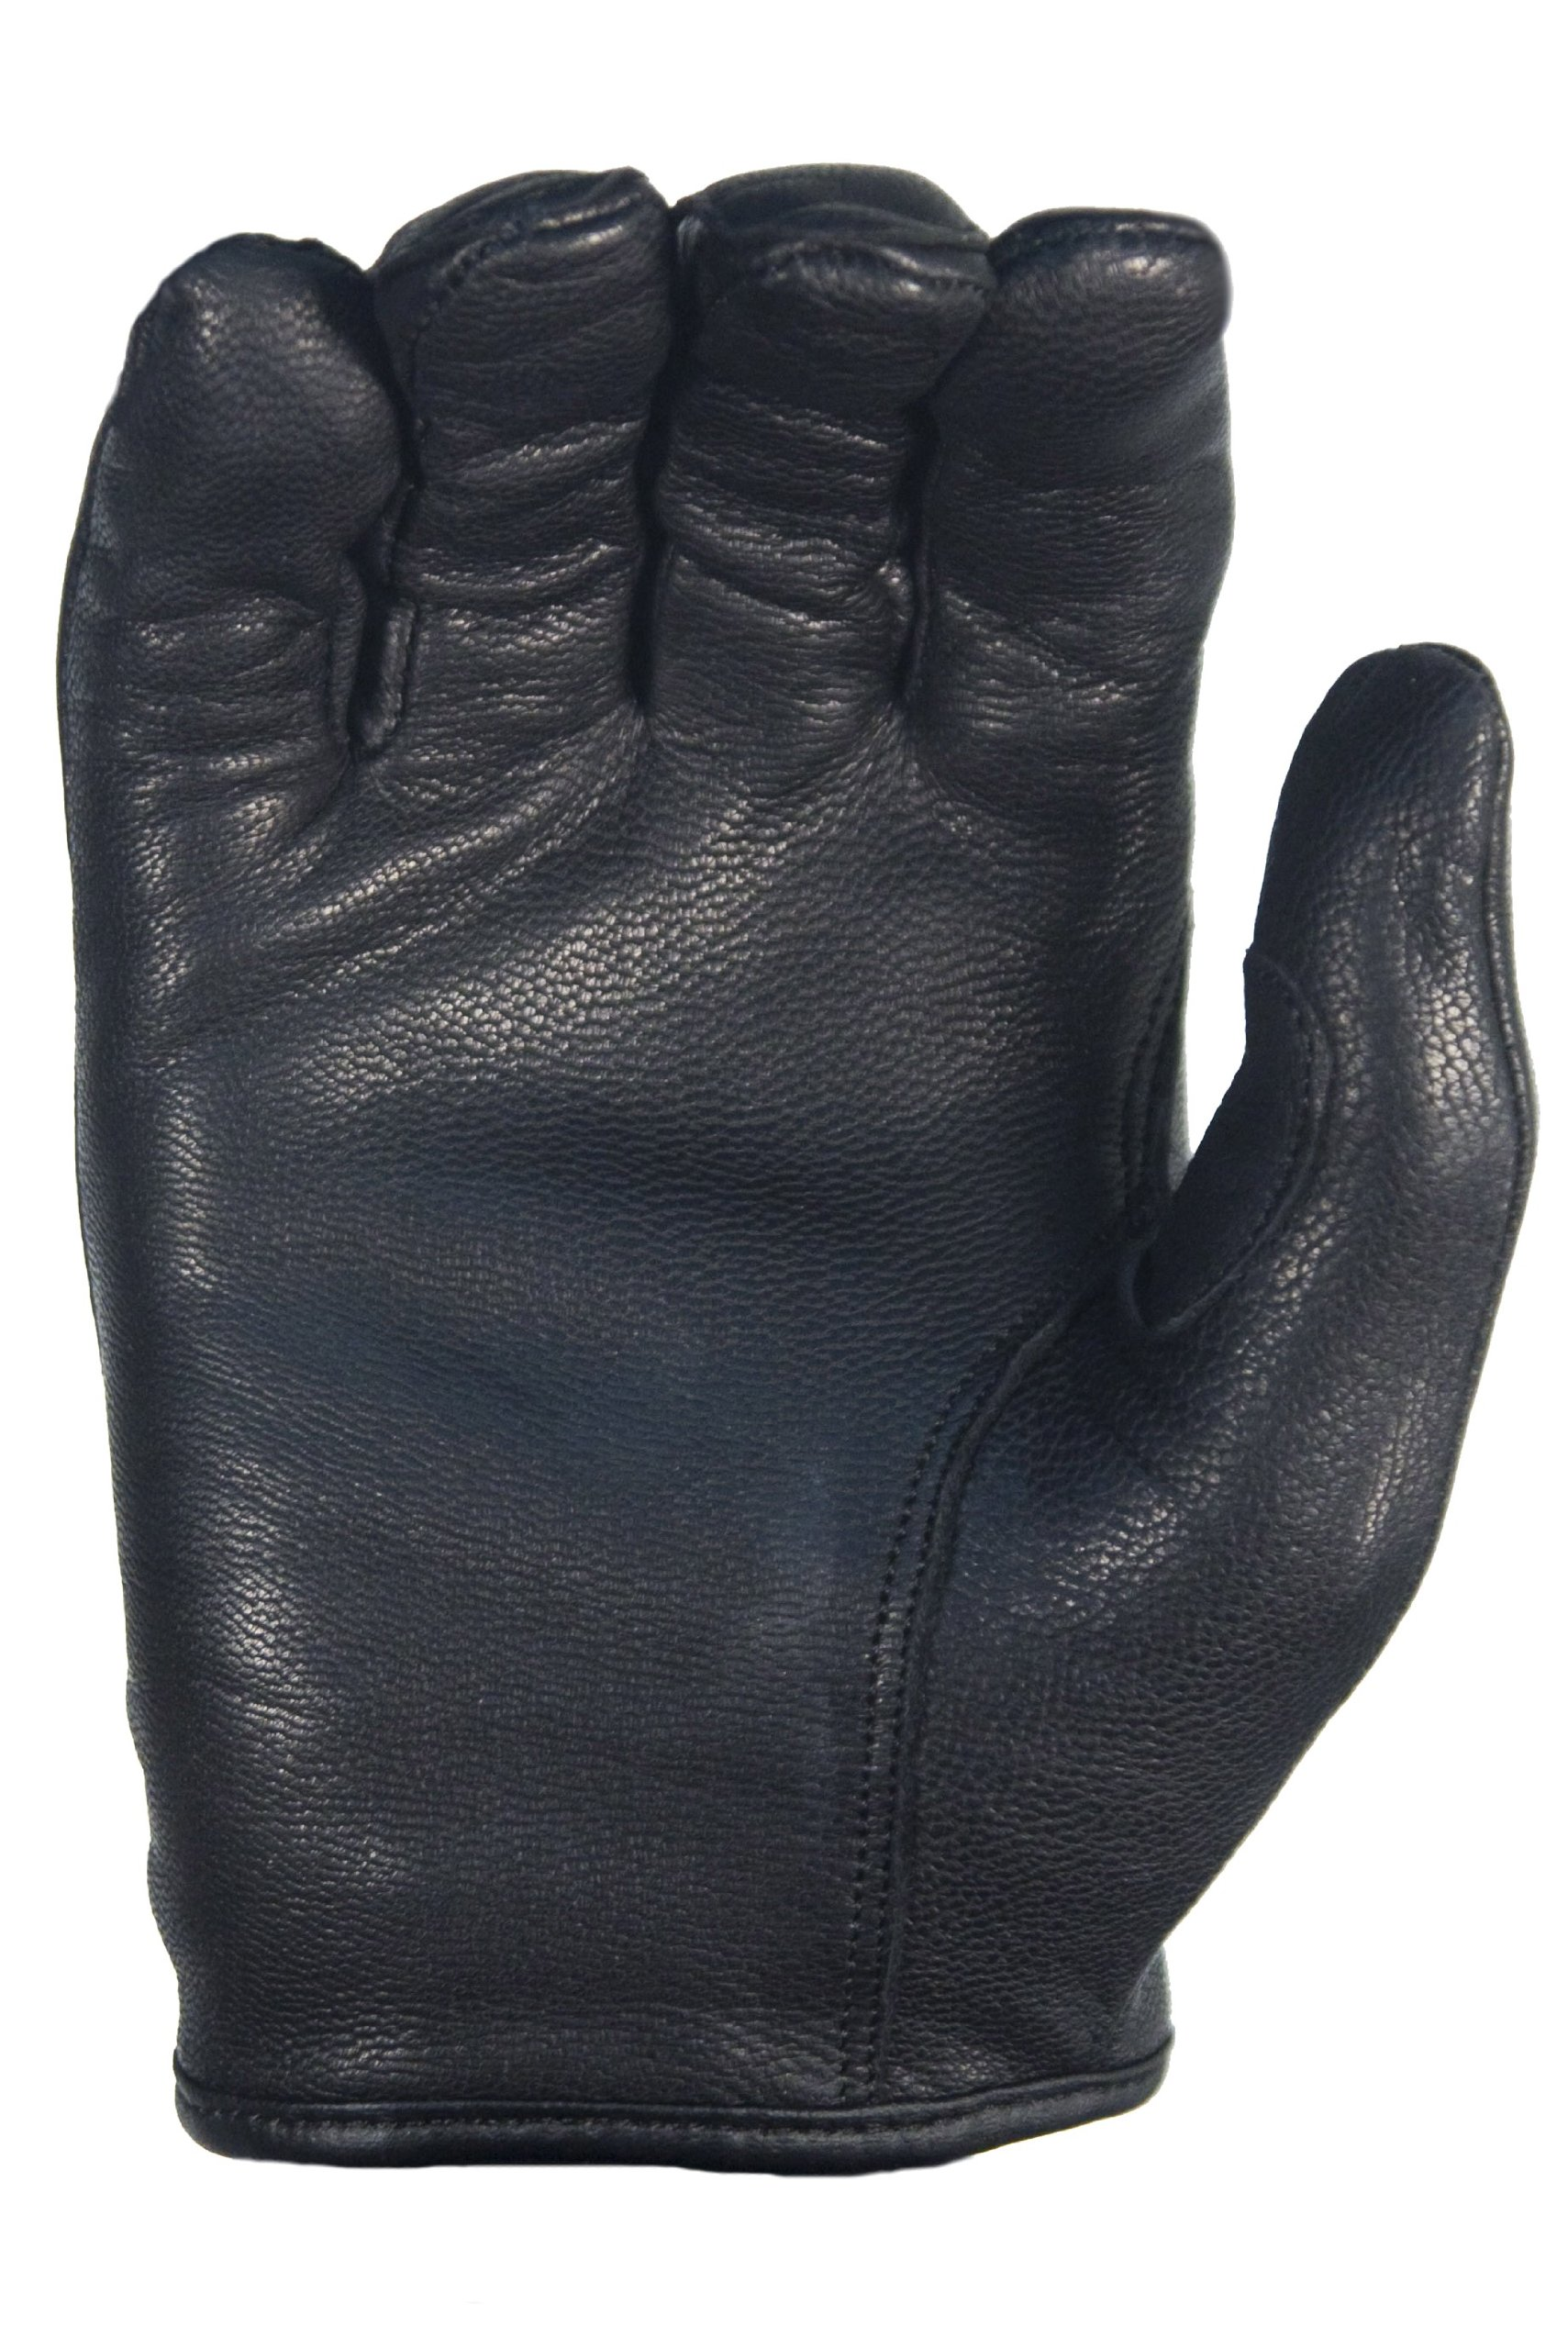 HWI Gear Kevlar Lined Leather Duty Glove, Large, Black by ACK, LLC